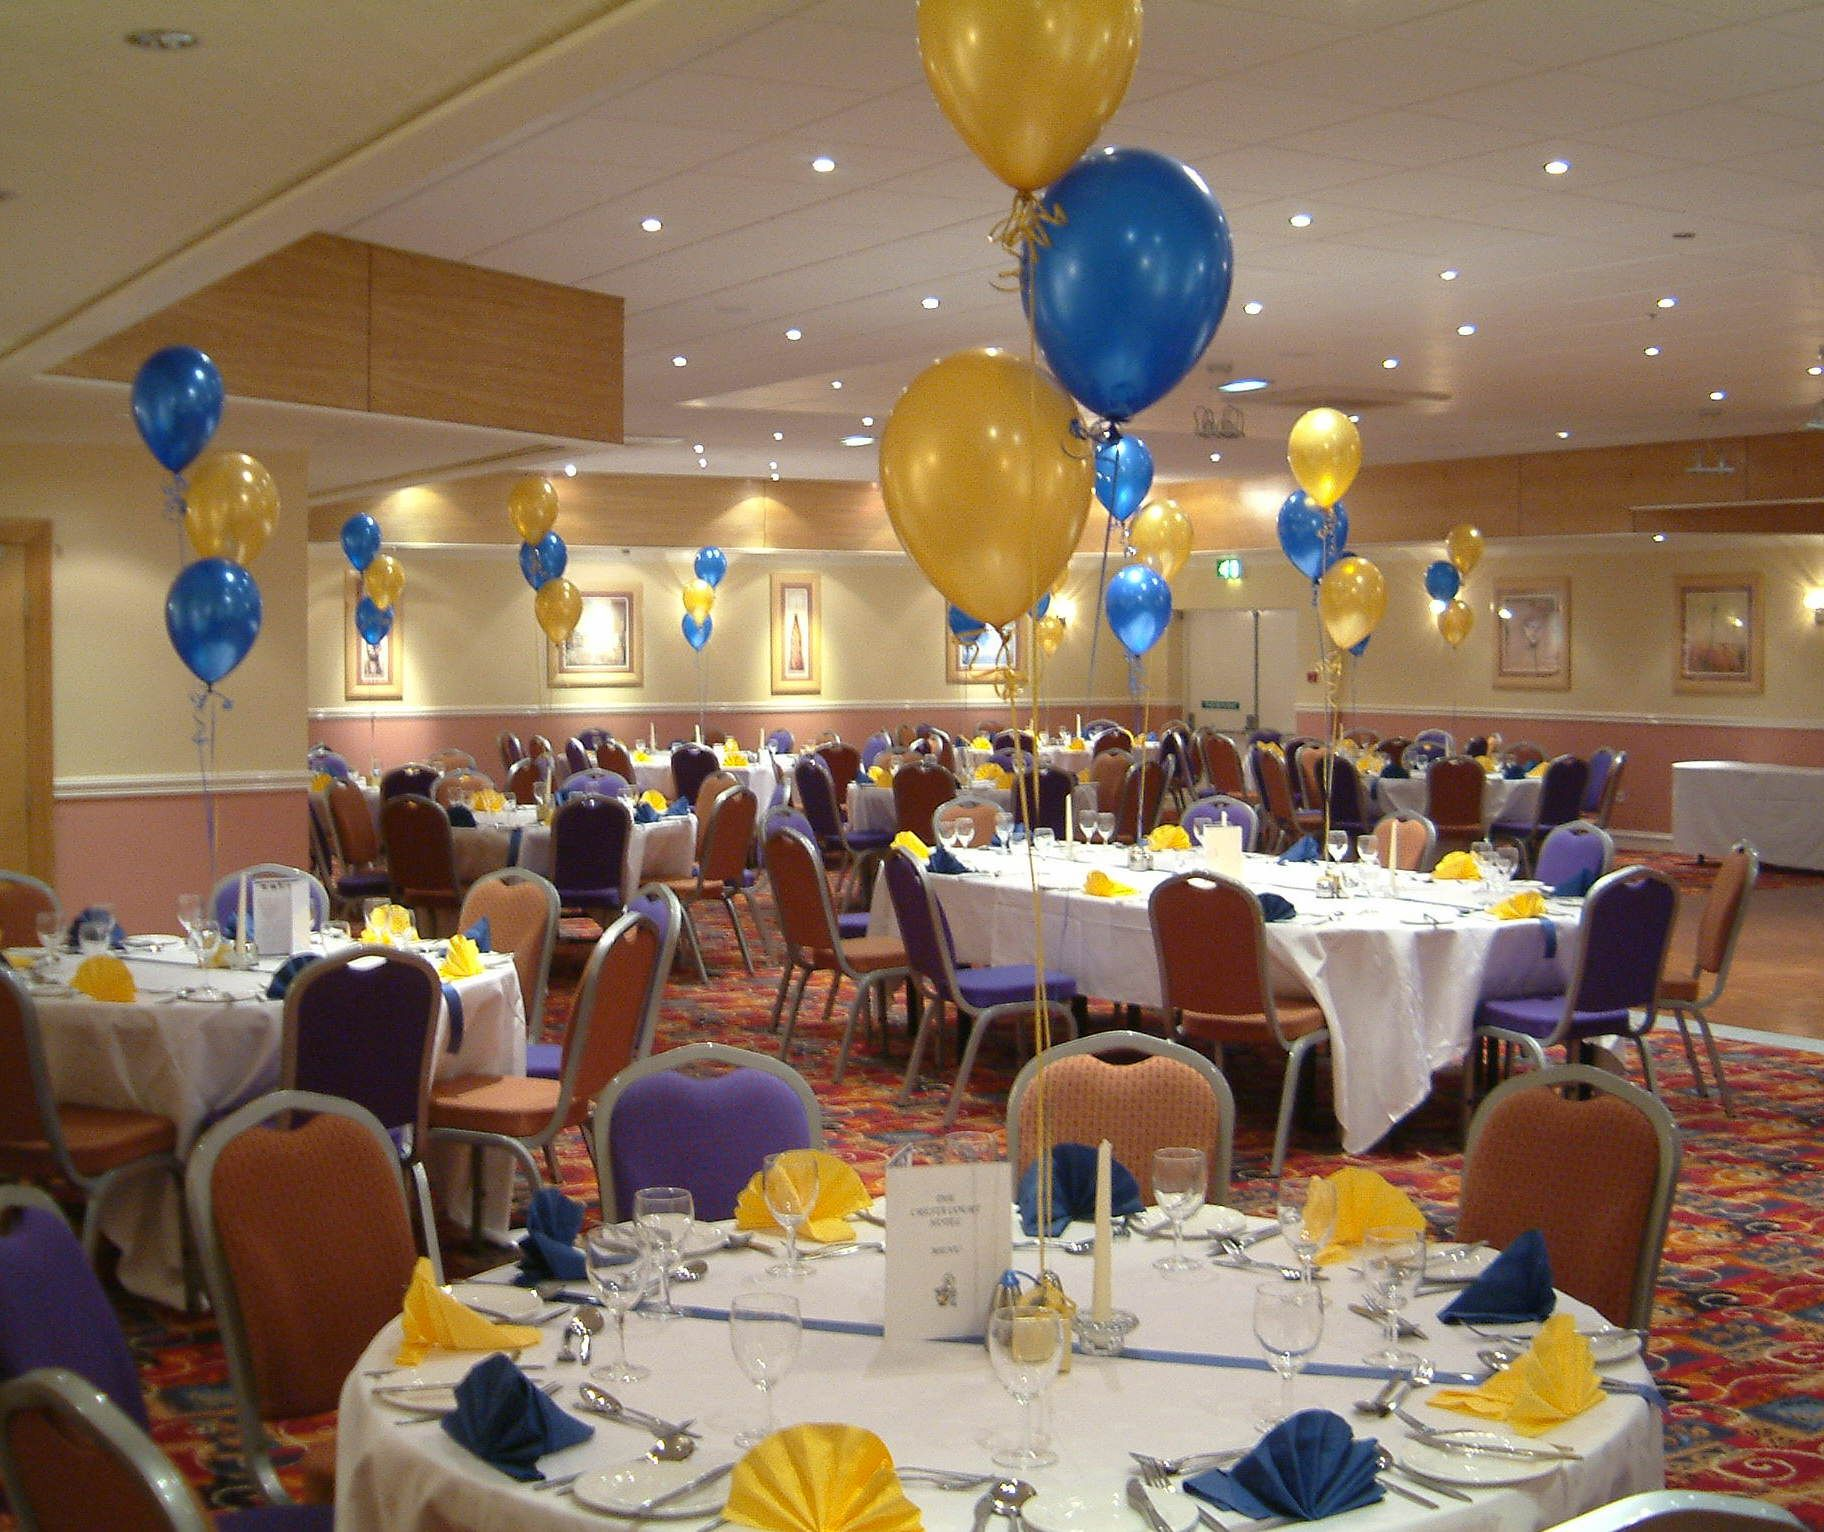 Balloon decoration ideas for function room also effects rh pinterest